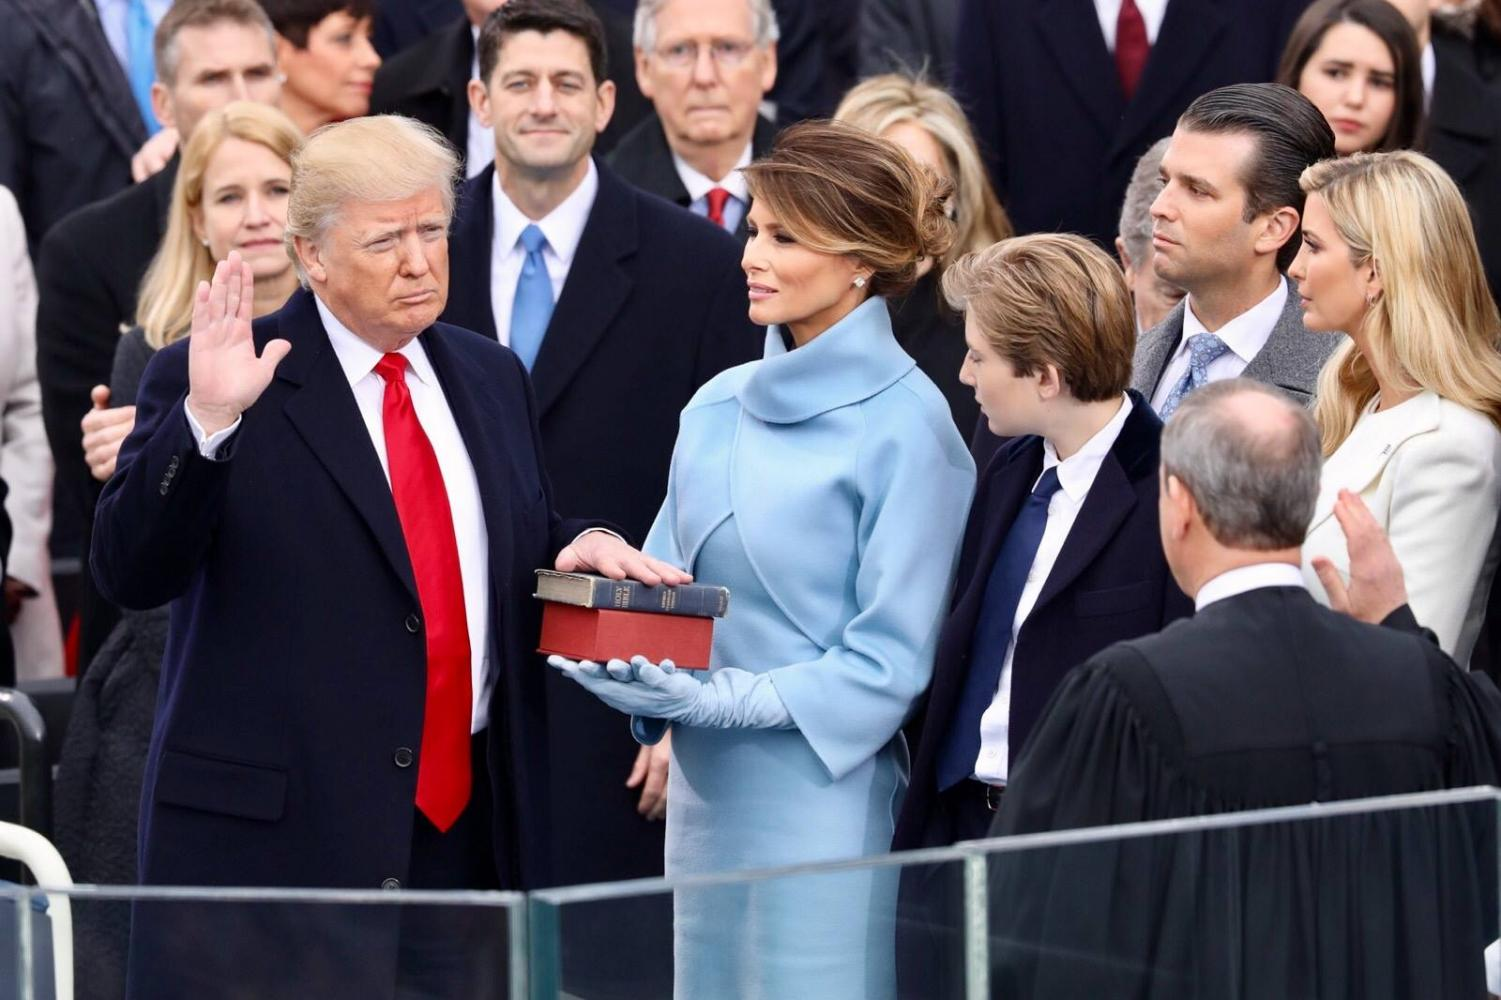 President Donald Trump being sworn in on January 20, 2017.